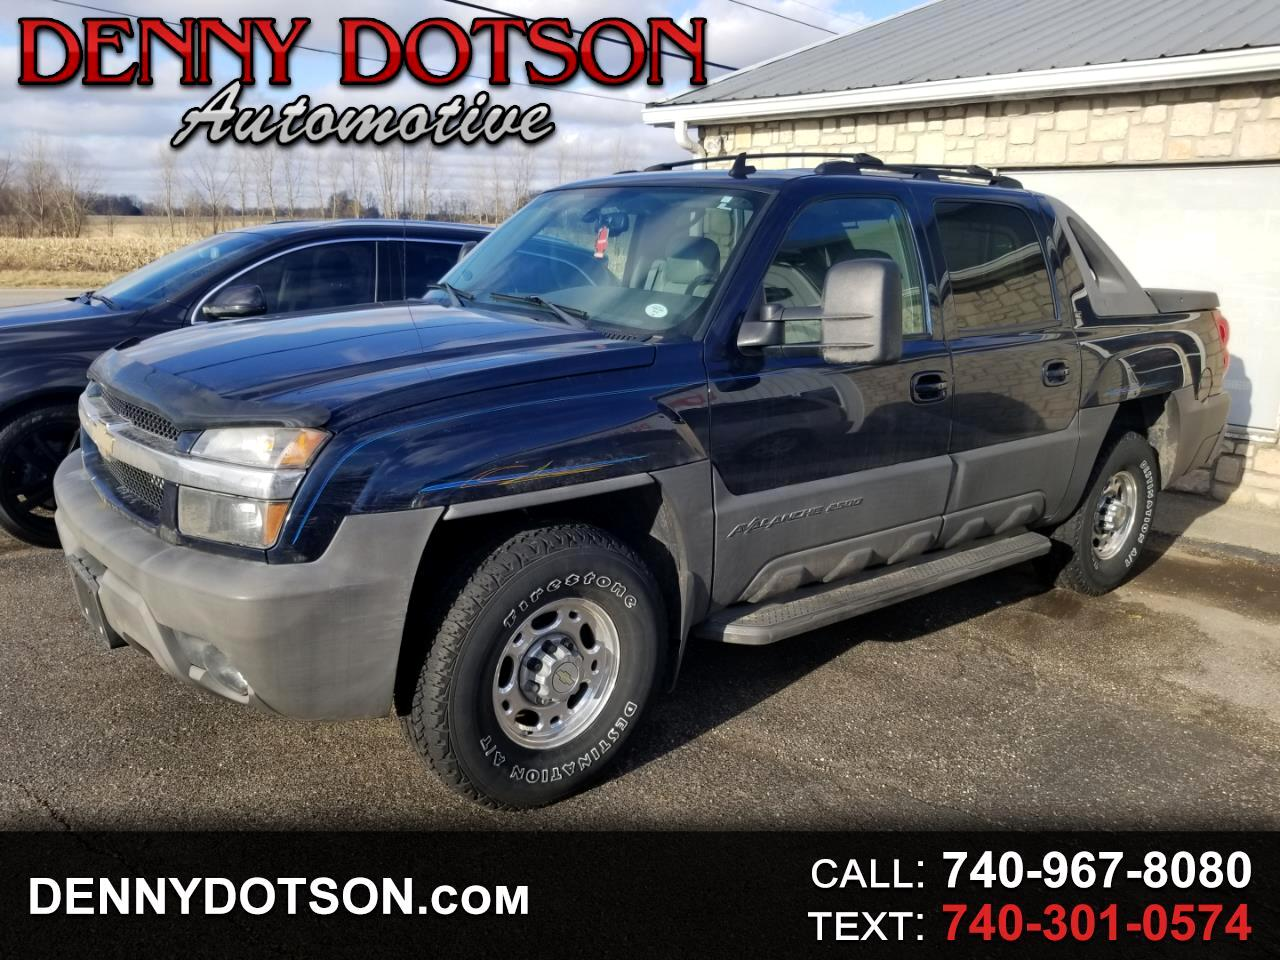 2006 Chevrolet Avalanche 2500 5dr Crew Cab 130